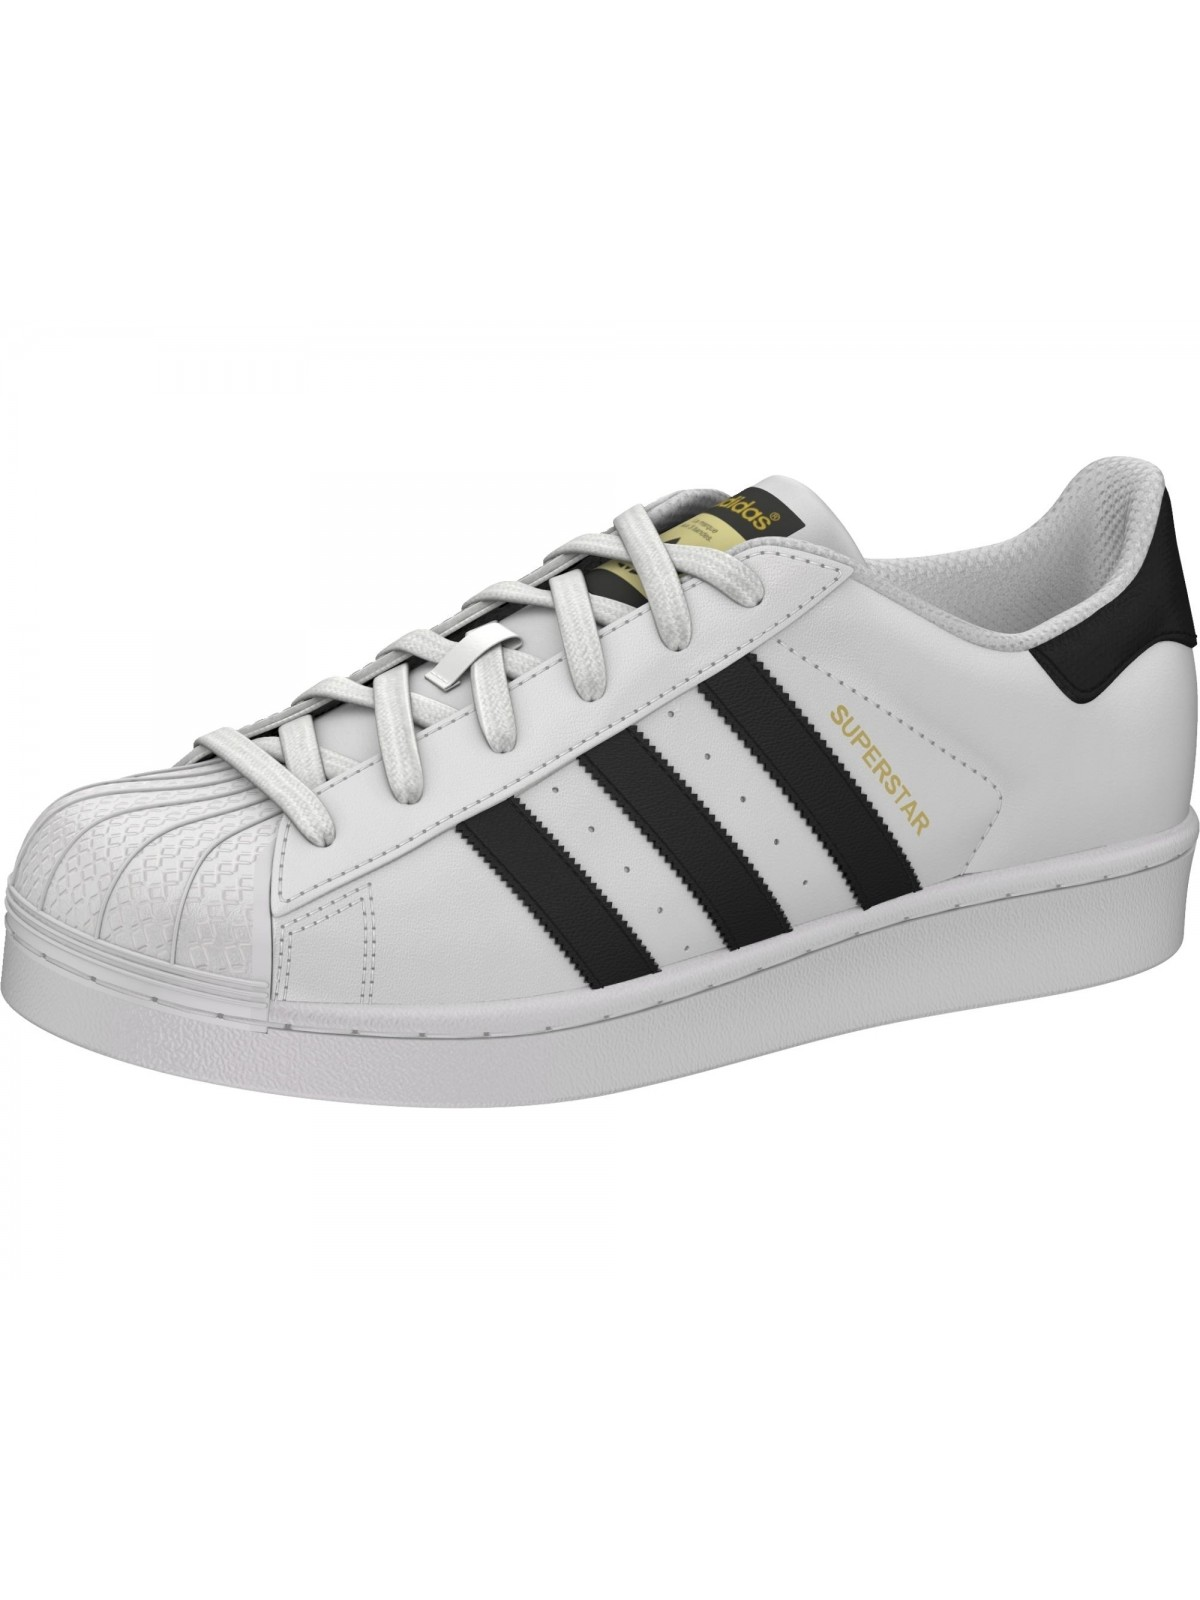 ADIDAS Superstar cuir blanc / noir / or -